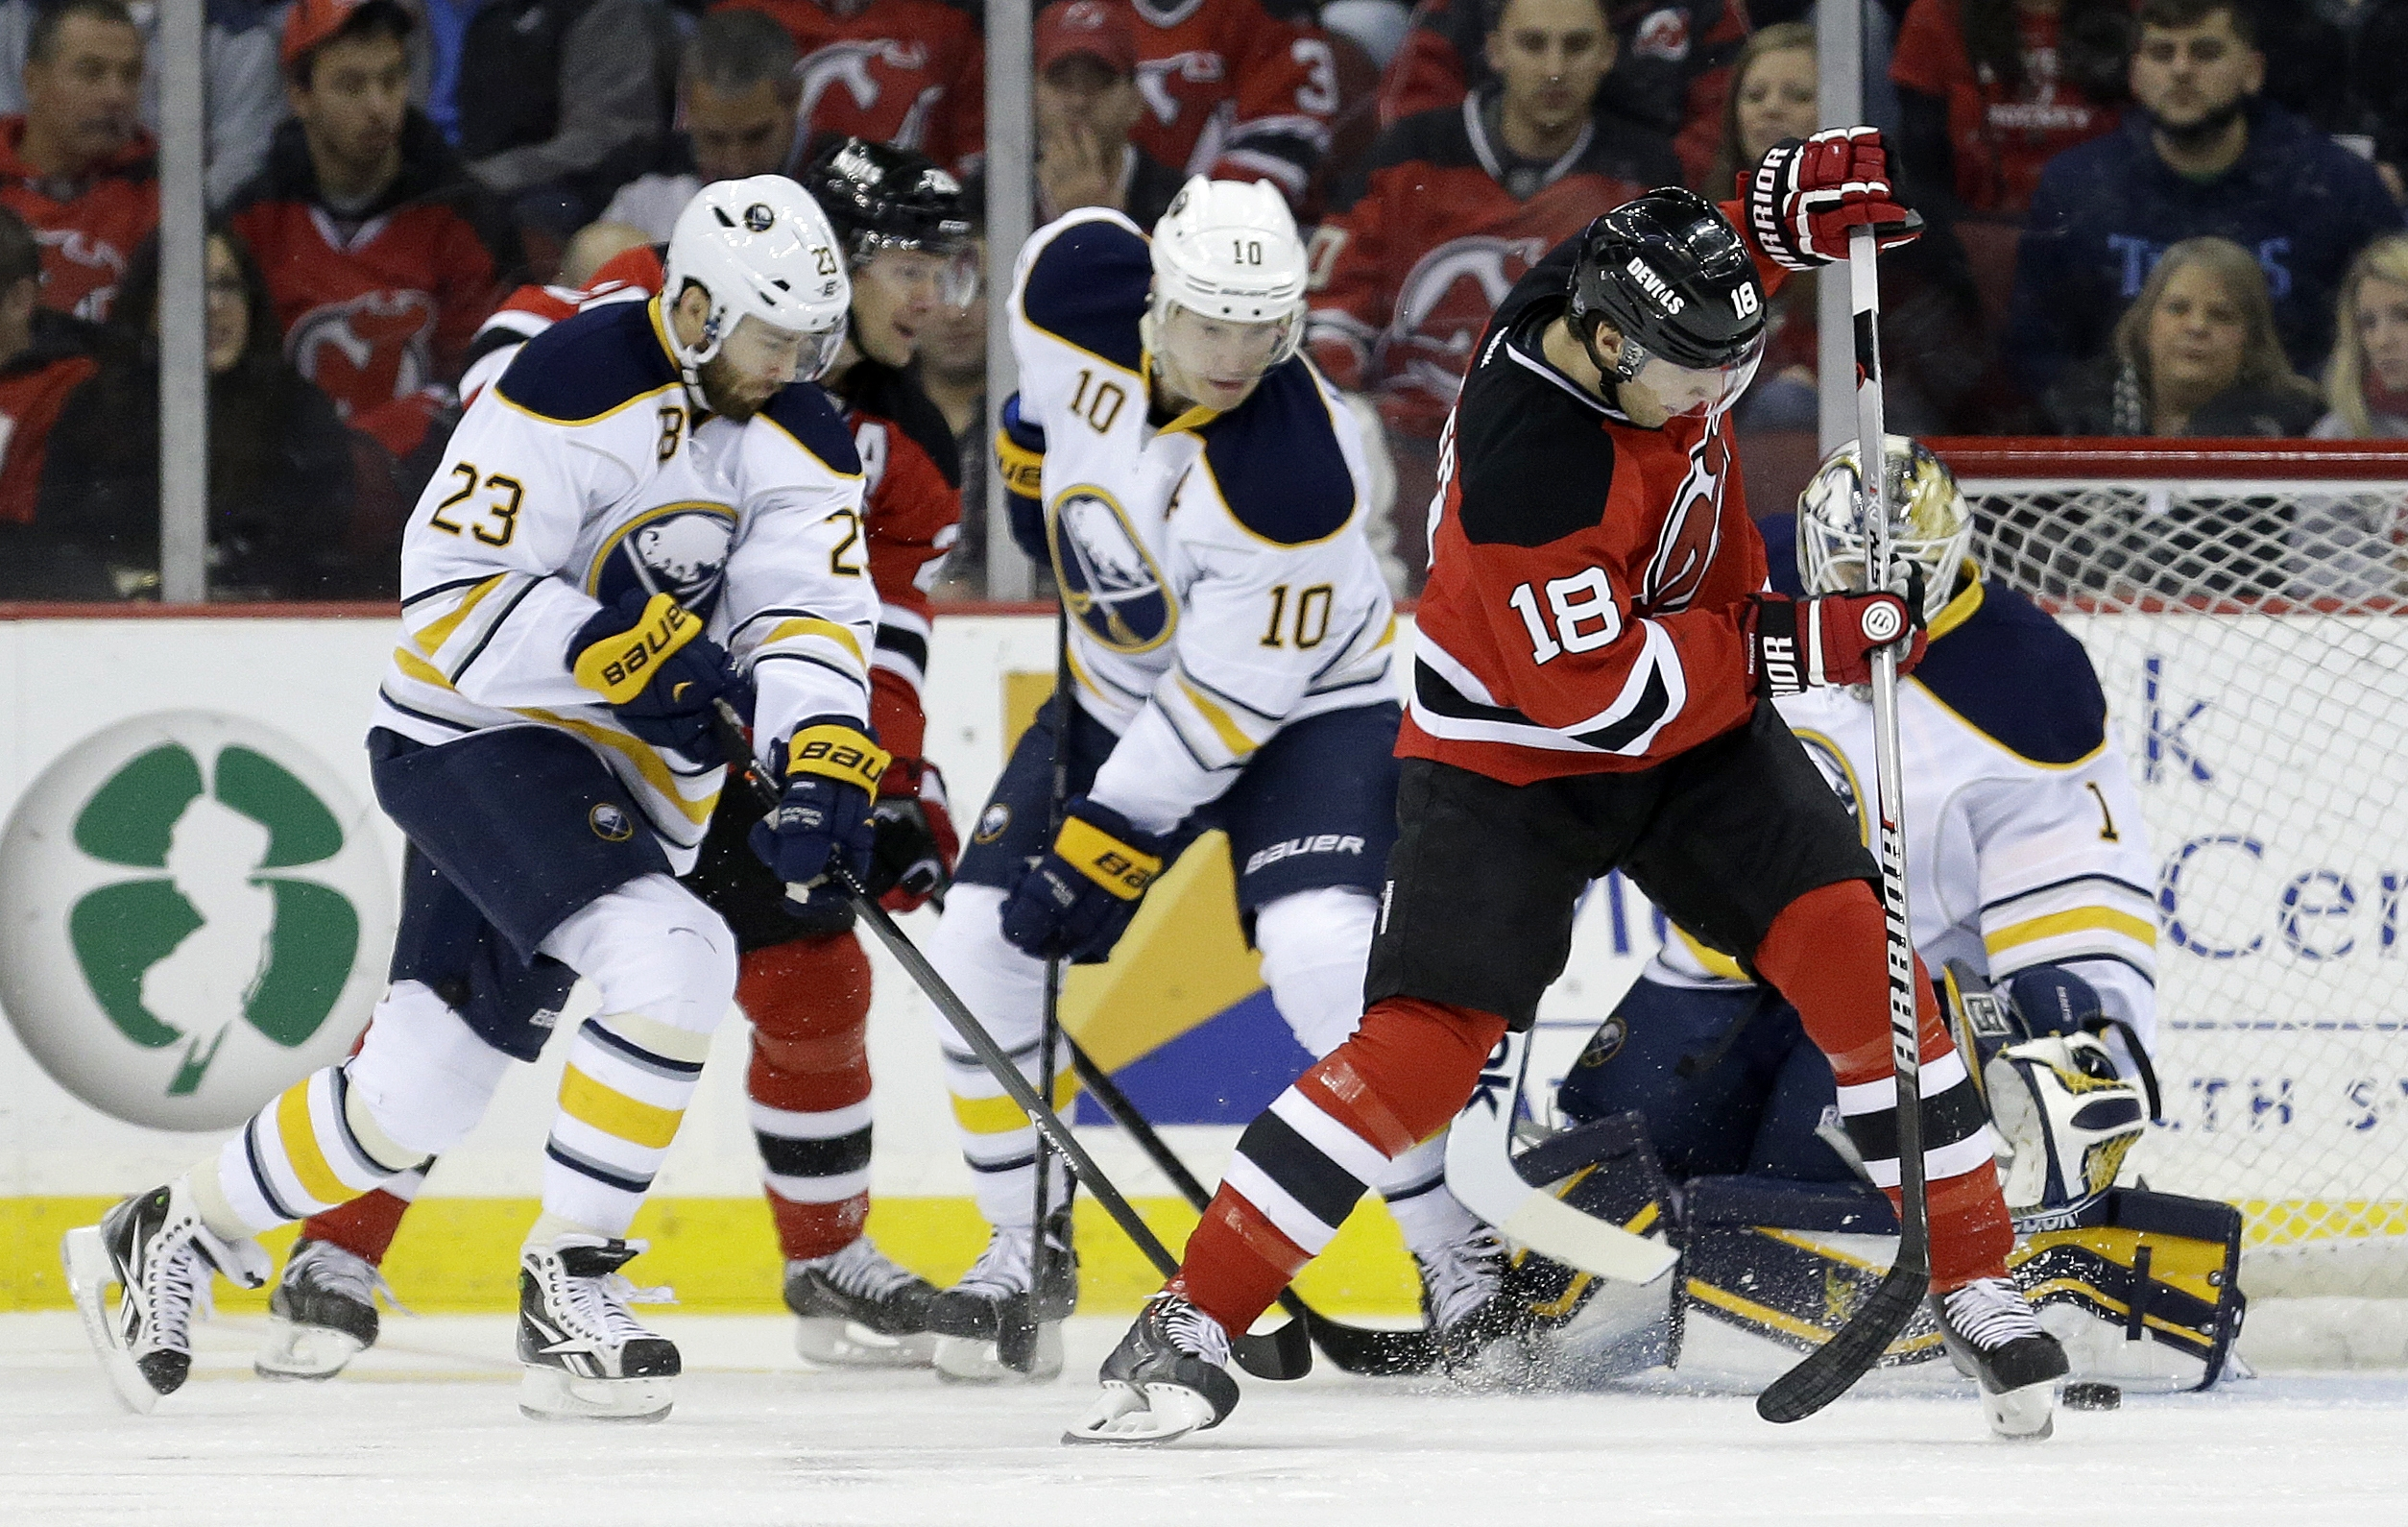 Devils winger Steve Bernier tries to muster a shot against Sabres goalie Jhonas Enroth as Buffalo's Ville Leino (23) and Christian Ehrhoff defend.